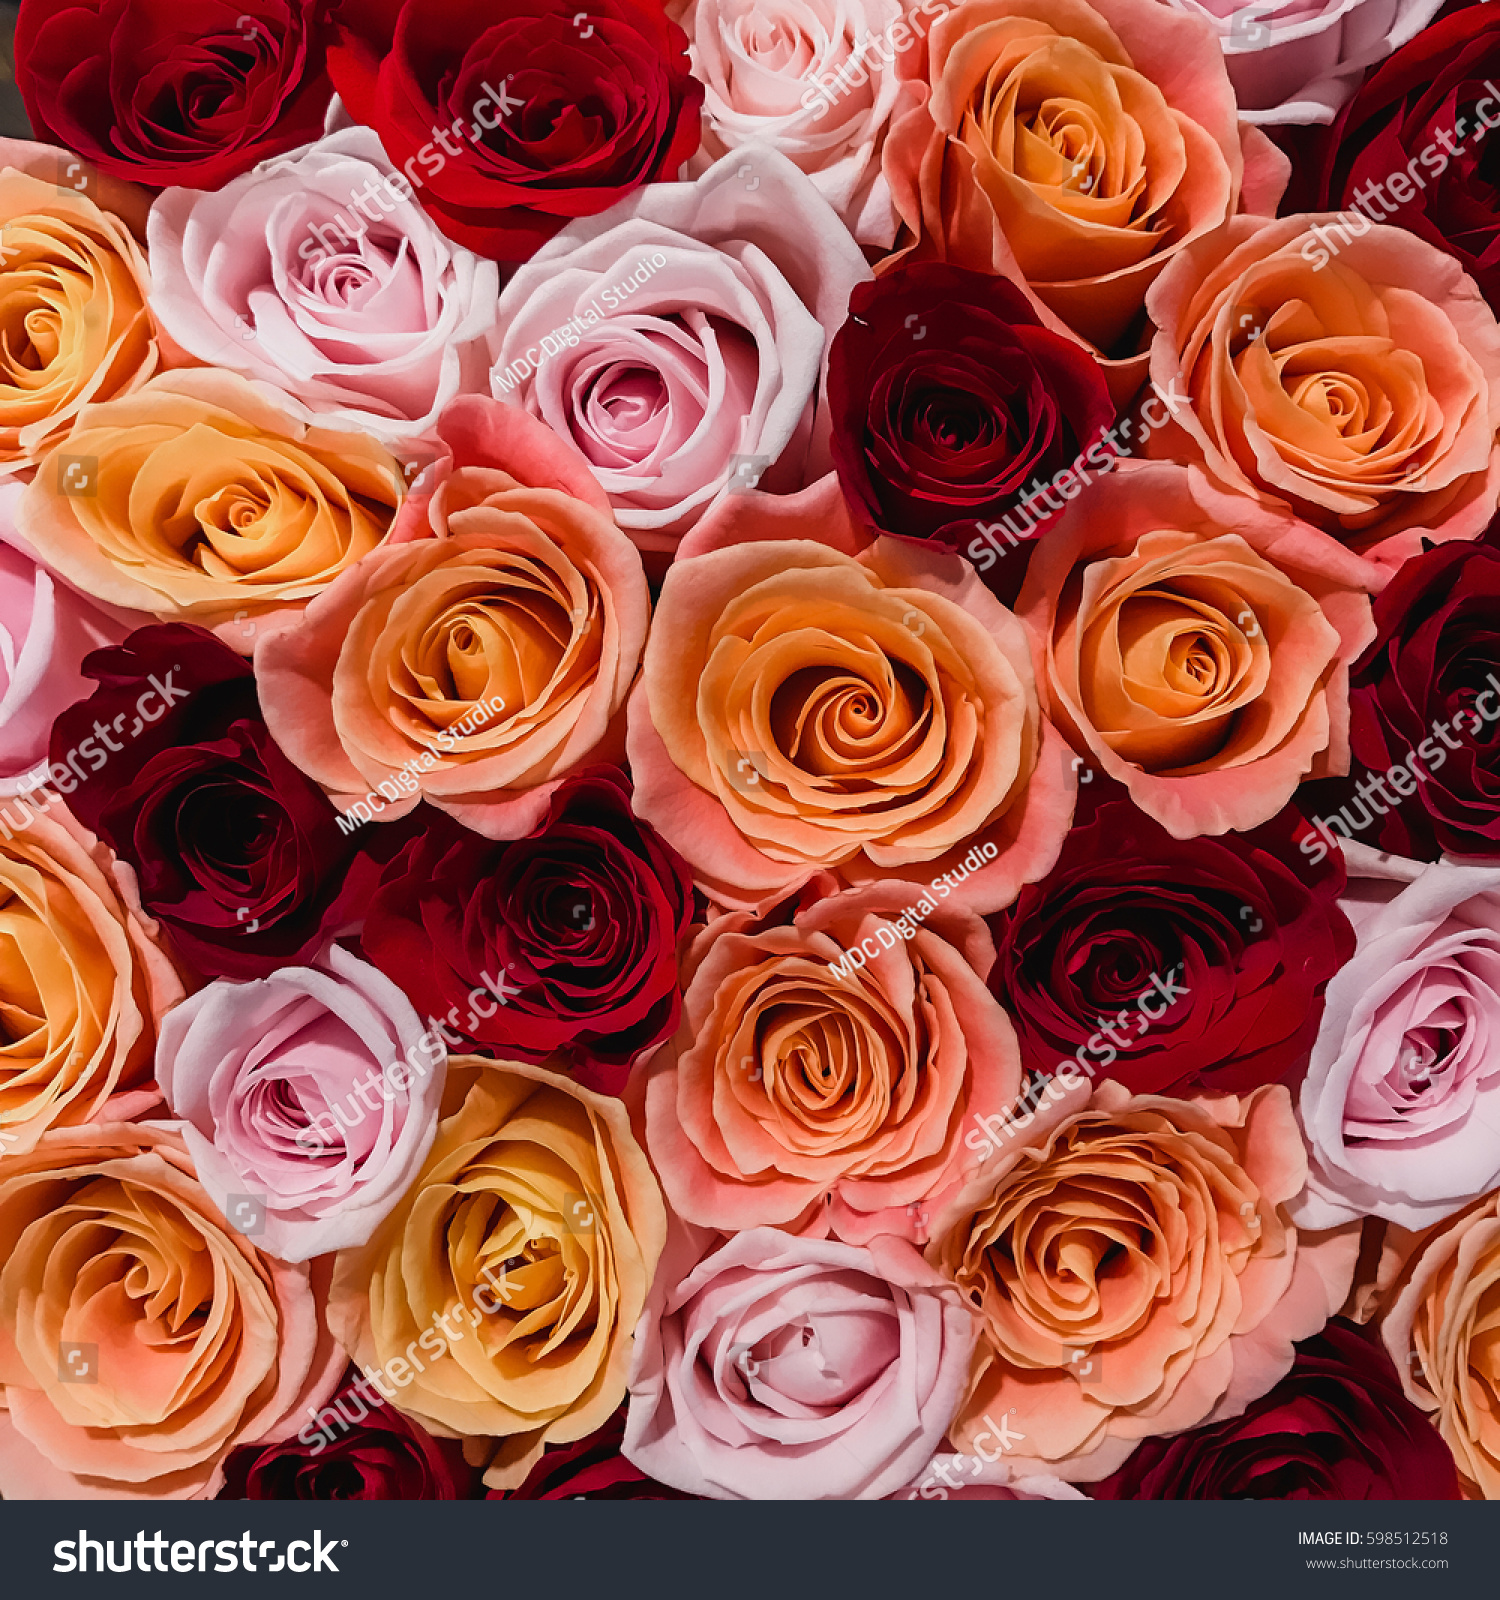 Bouquet roses different colors top view stock photo for Different color roses bouquet